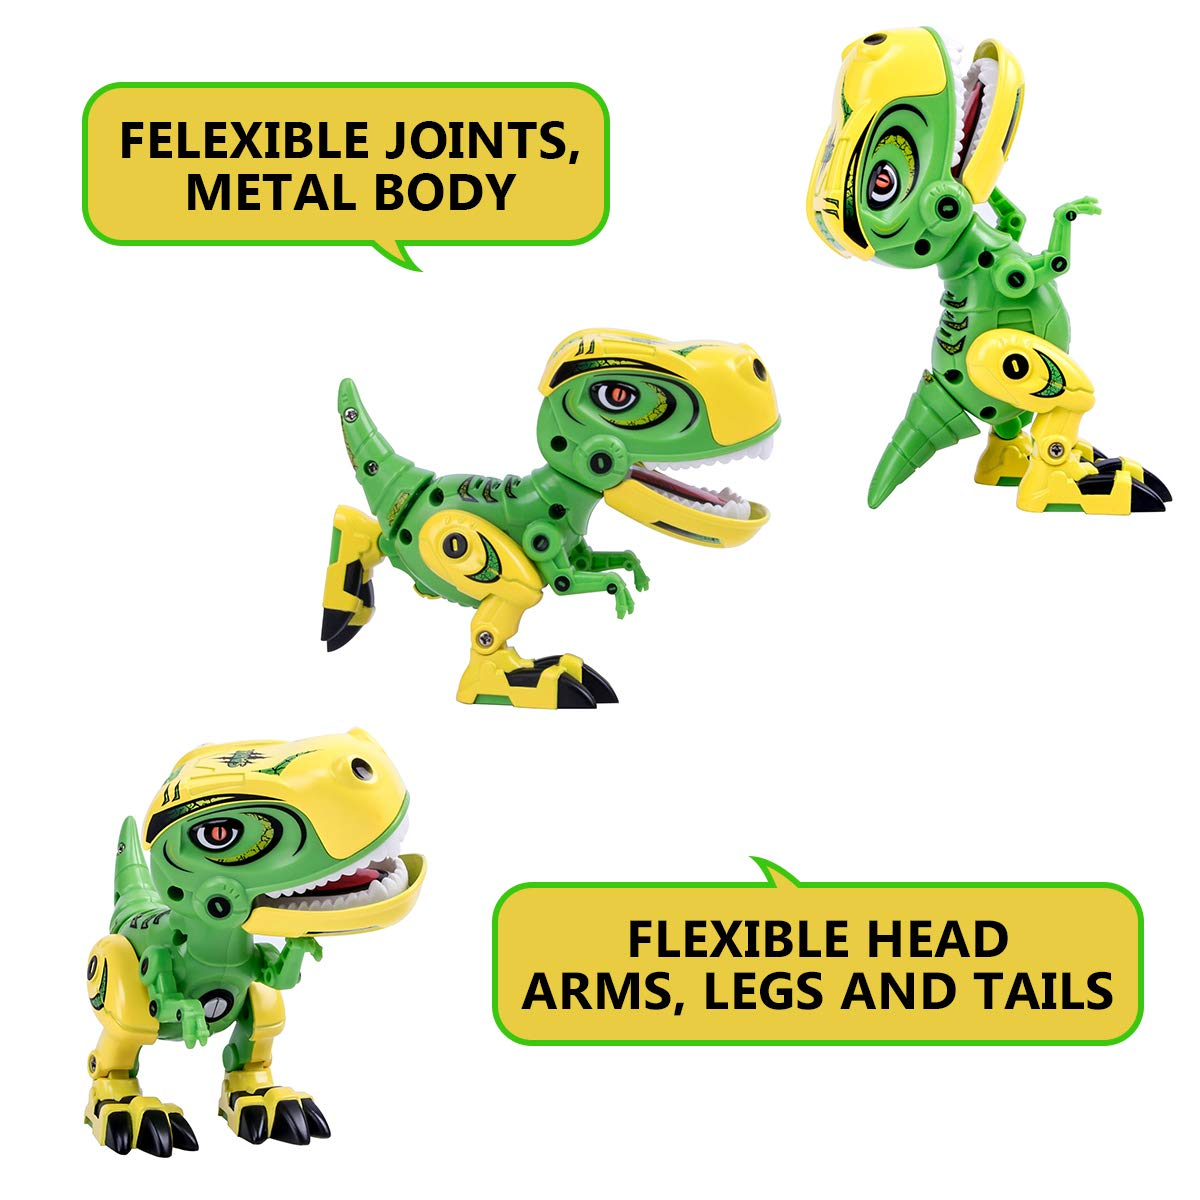 GILOBABY Dinosaur Toys for Kids, Alloy Metal Mini Tyrannosaurus Rex Dinosaur with Shine Eyes and Roaring Sound, Flexible Body, Gift for Toddlers Boys Girls (Green) by GILOBABY (Image #3)